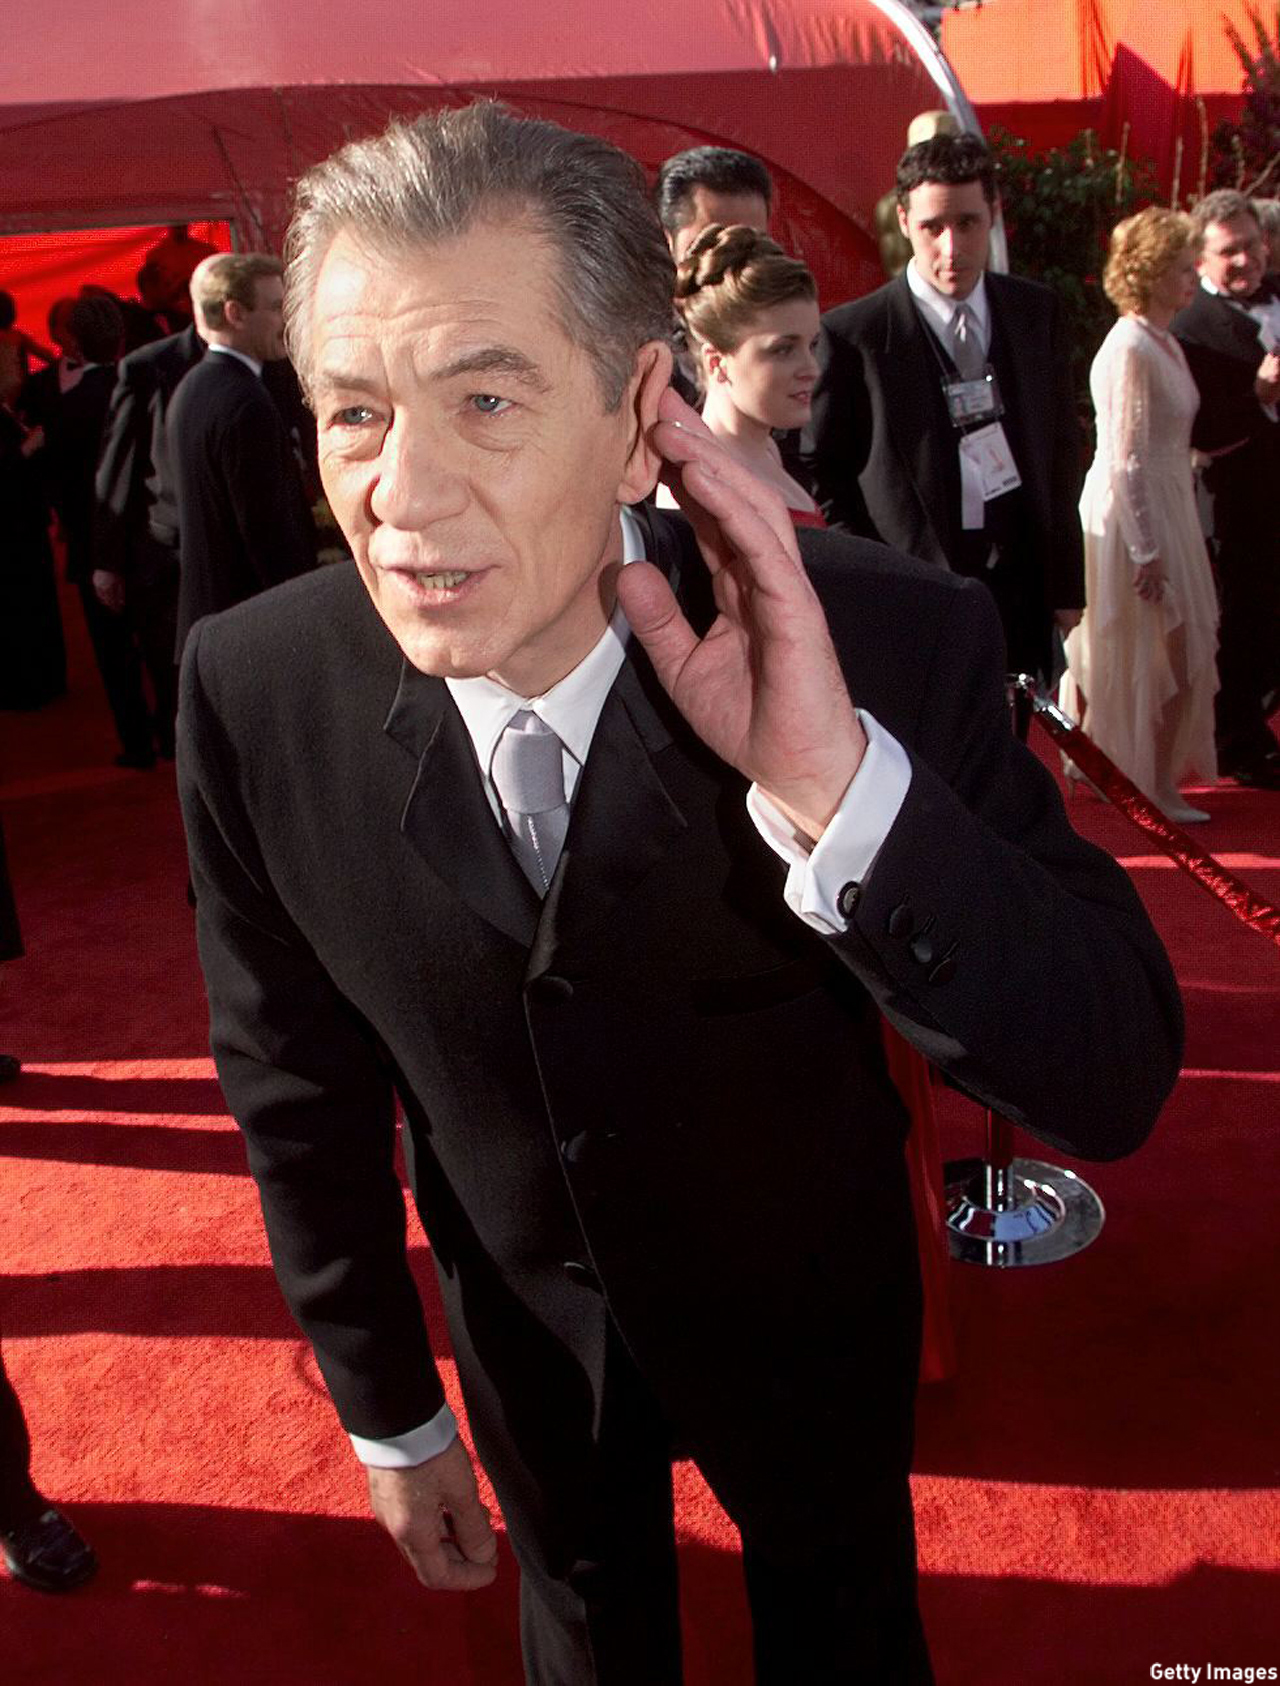 McKellen arrived to the 71st Annual Academy Awards in 1999, where he was nominated for Best Actor for his role in 'Gods and Monsters.' (Vince Bucci/AFP/Getty Images)